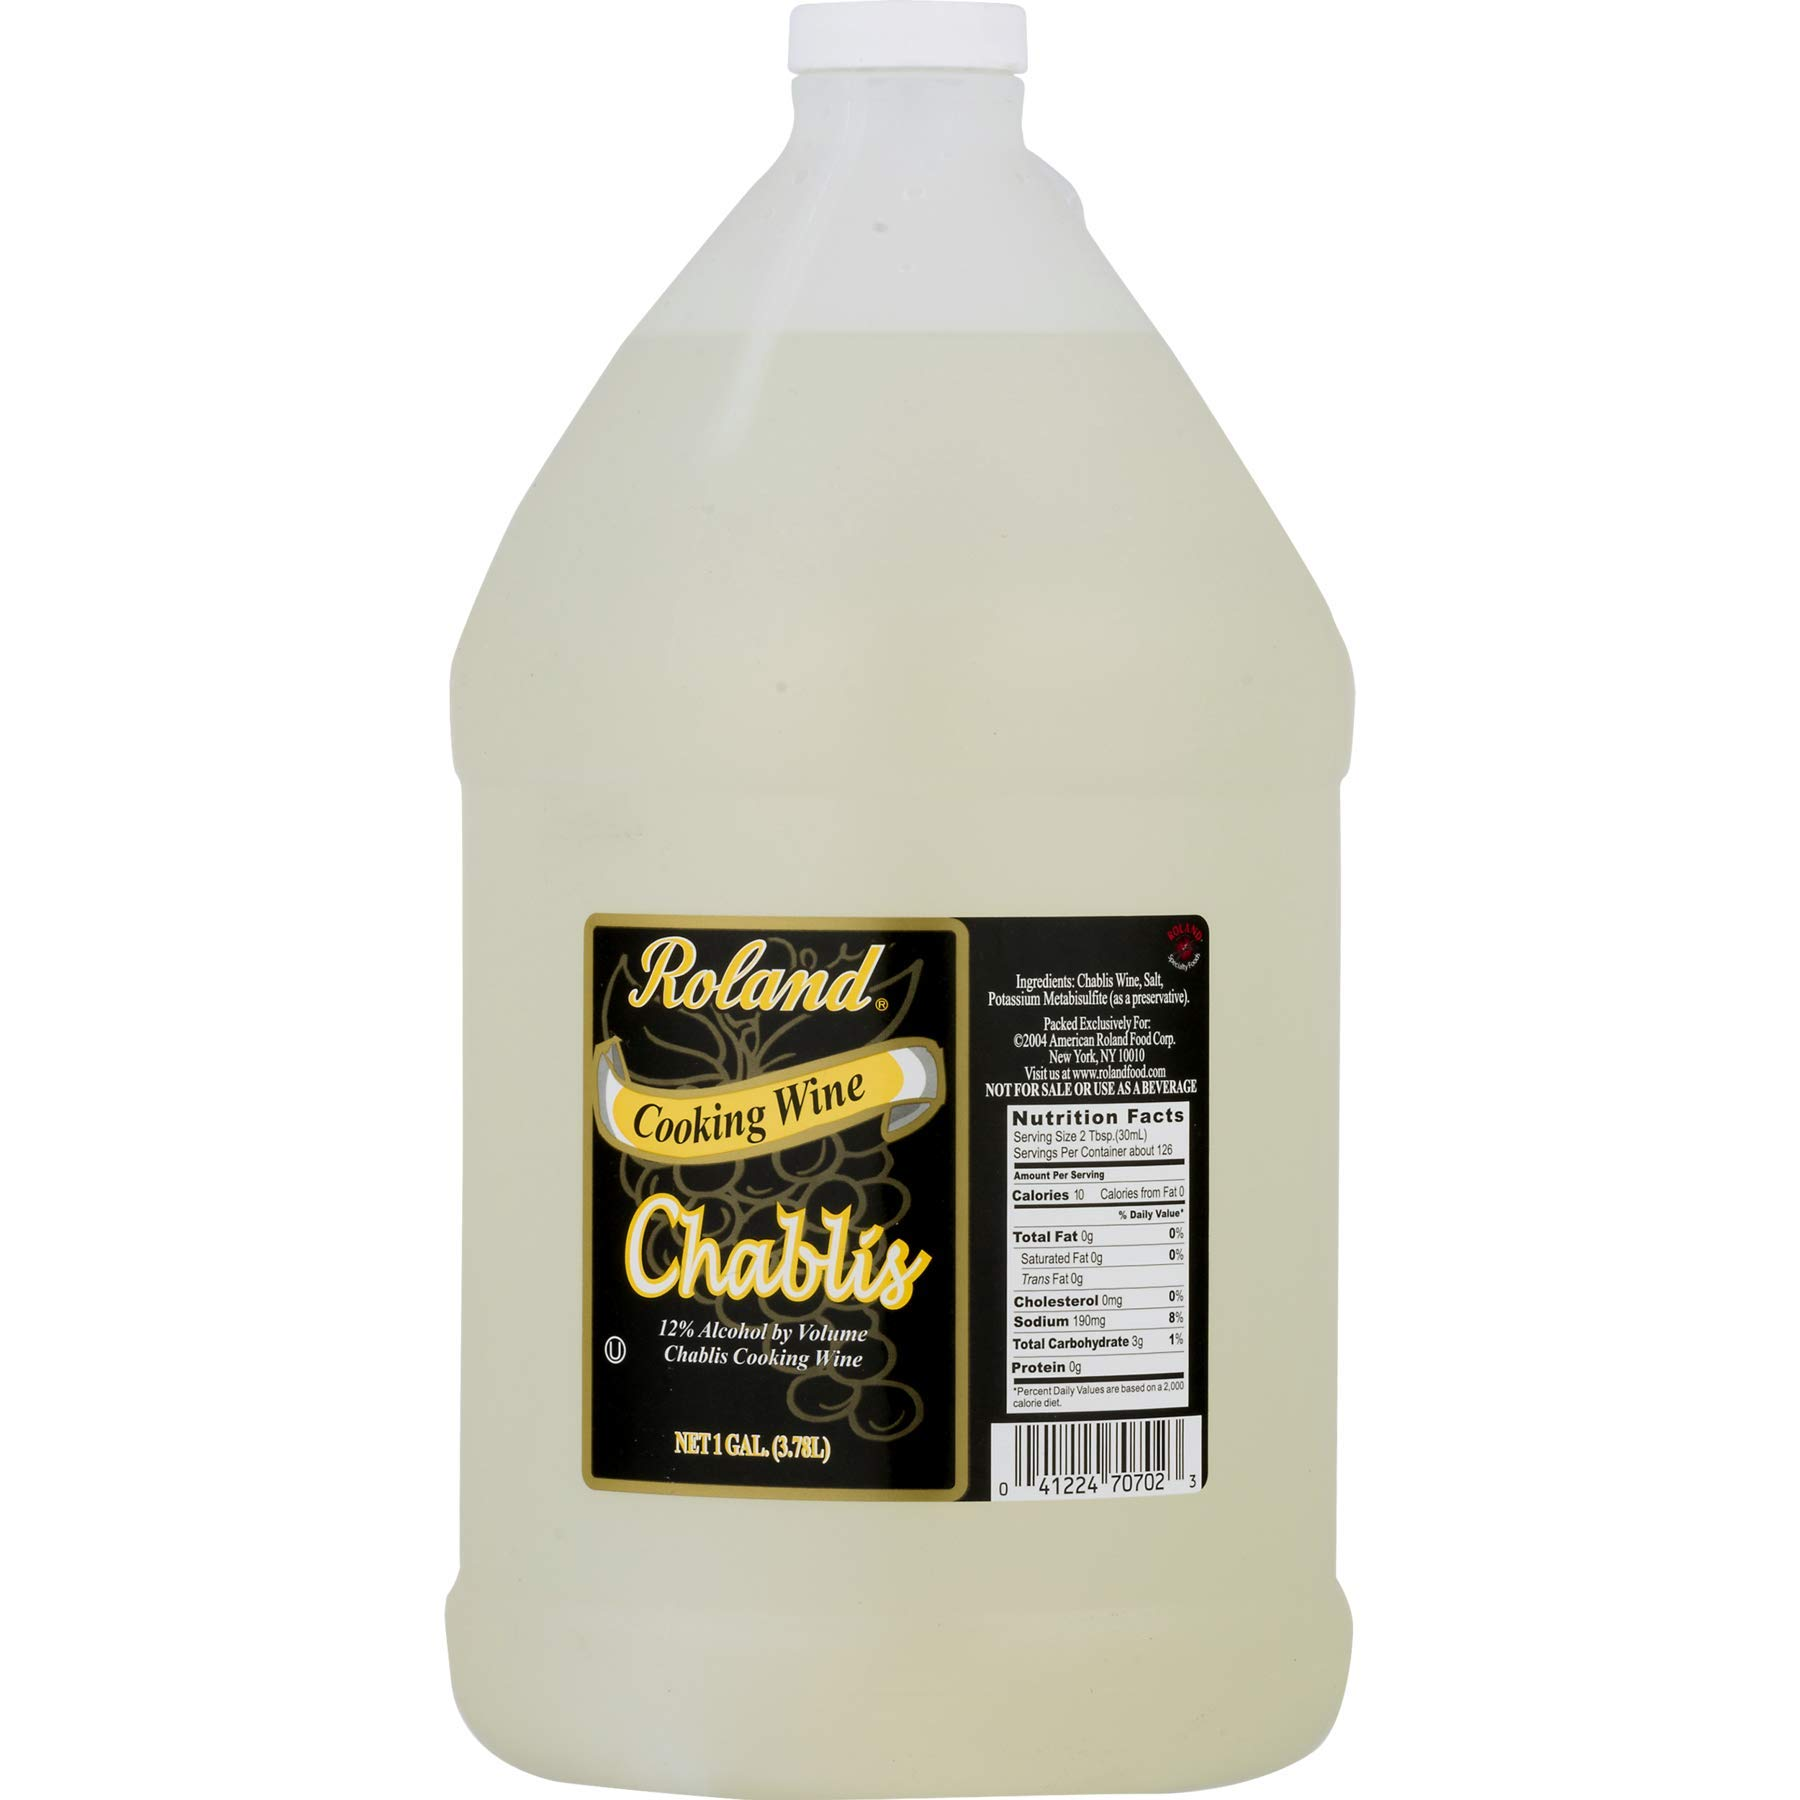 Roland Chablis Cooking Wine - 1 Gallon by Raland